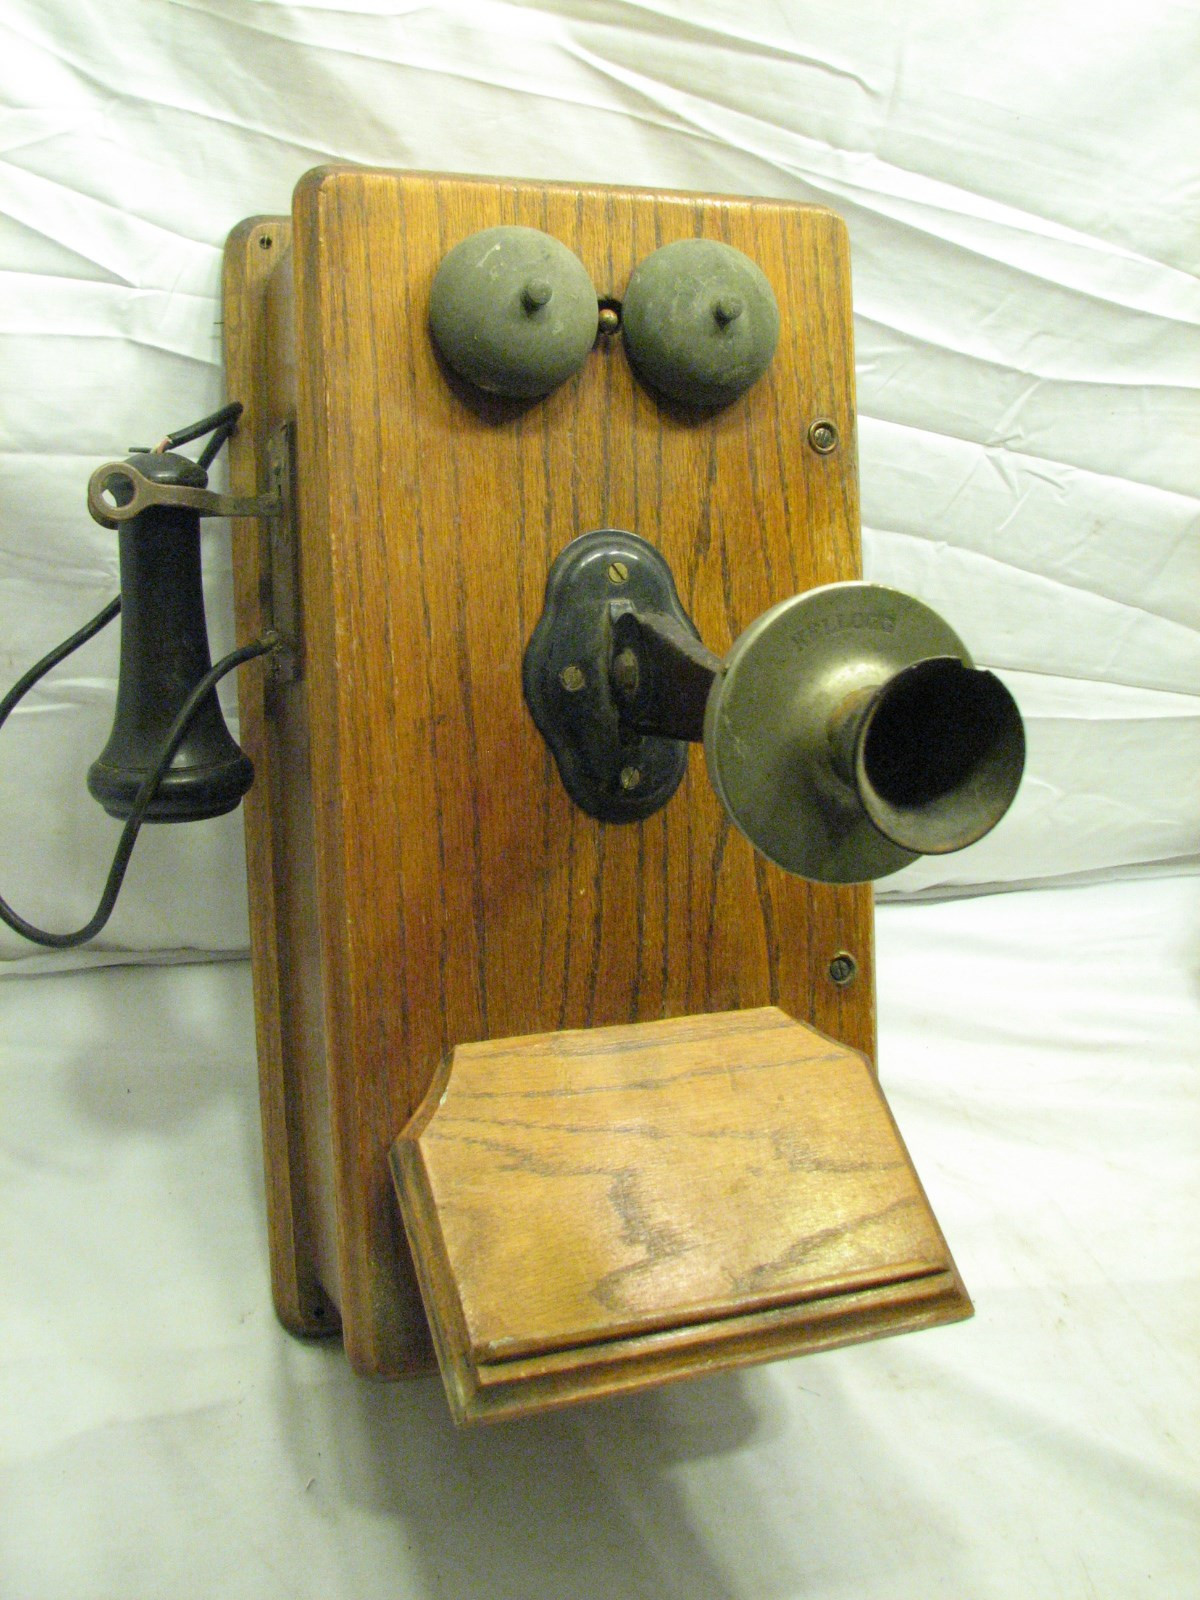 Luxury Antique Kellogg Oak Ringer Wall Telephone Wooden Box Phone Old Wooden Phone Of Adorable 43 Images Old Wooden Phone